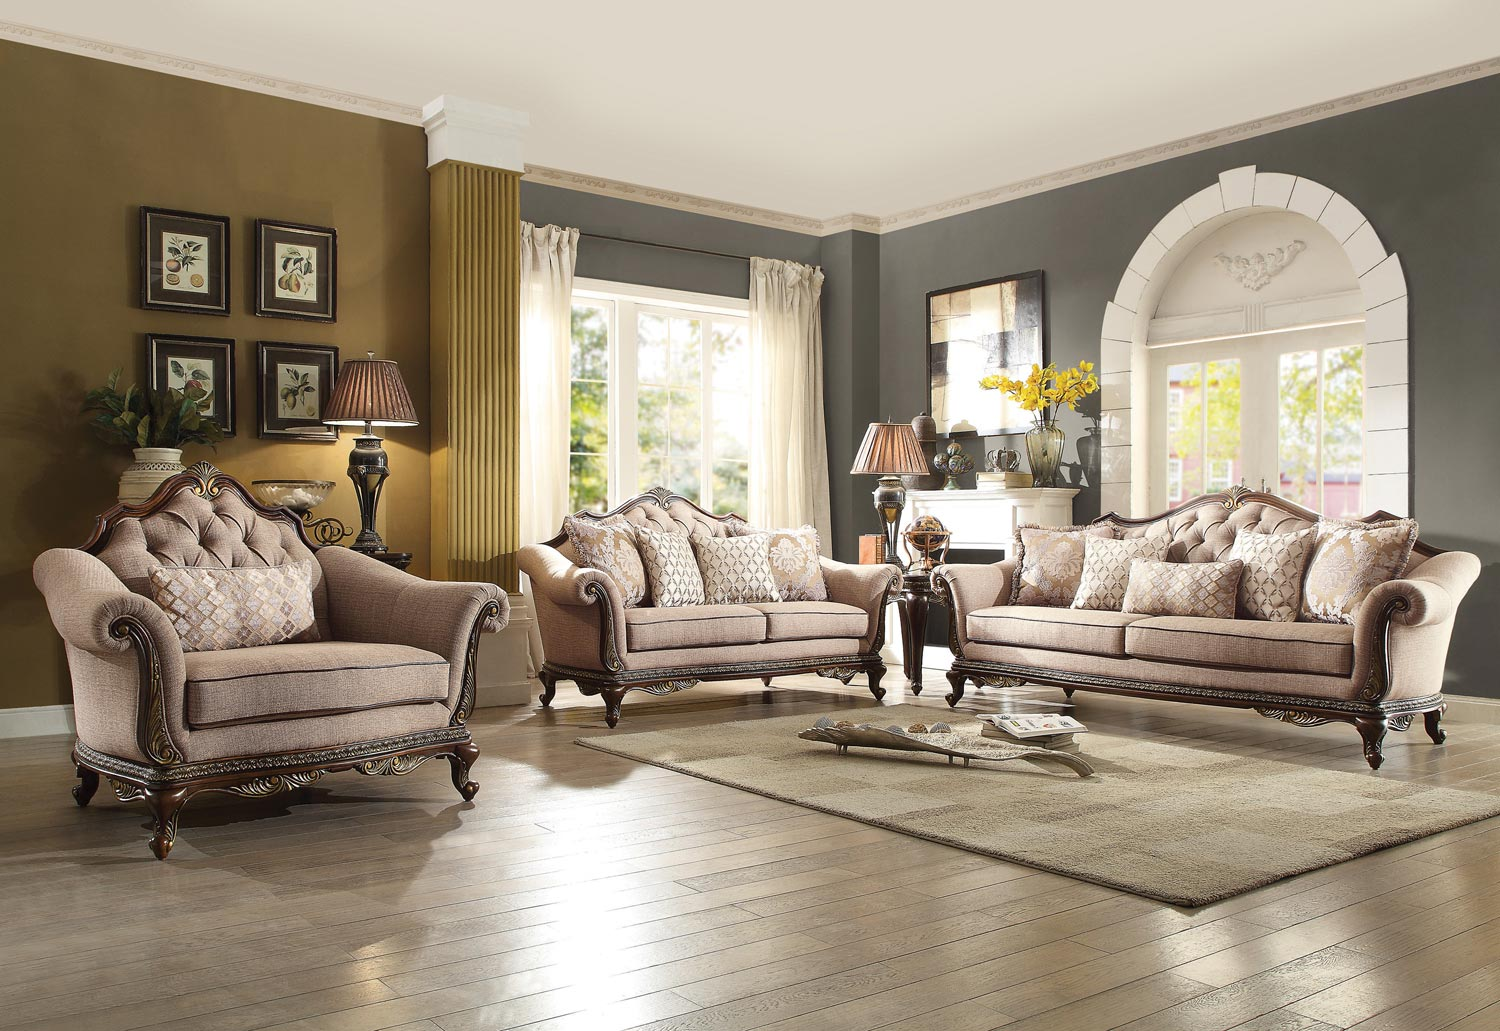 Homelegance Bonaventure Park Sofa Set - Chenille - Brown